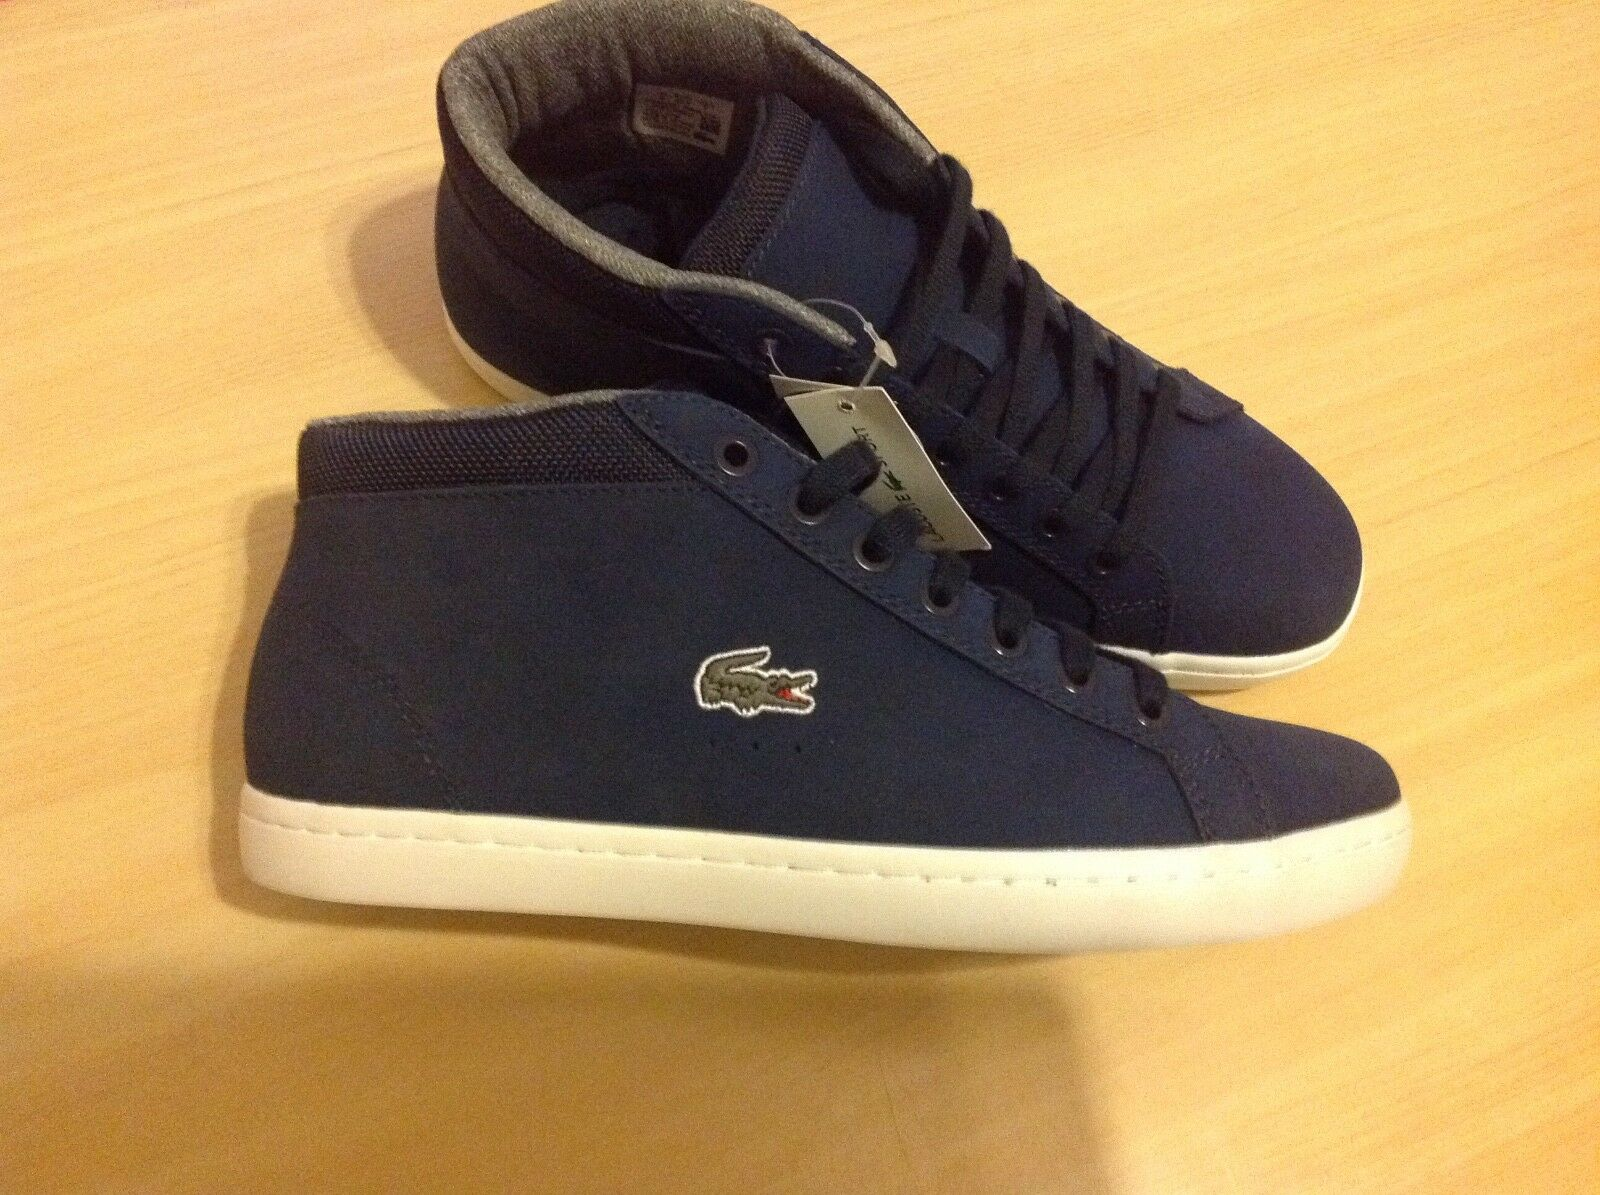 19a8d20fb Chukka Tamaño Zapatillas Straight Set Lacoste 6 Men s T6APqHA